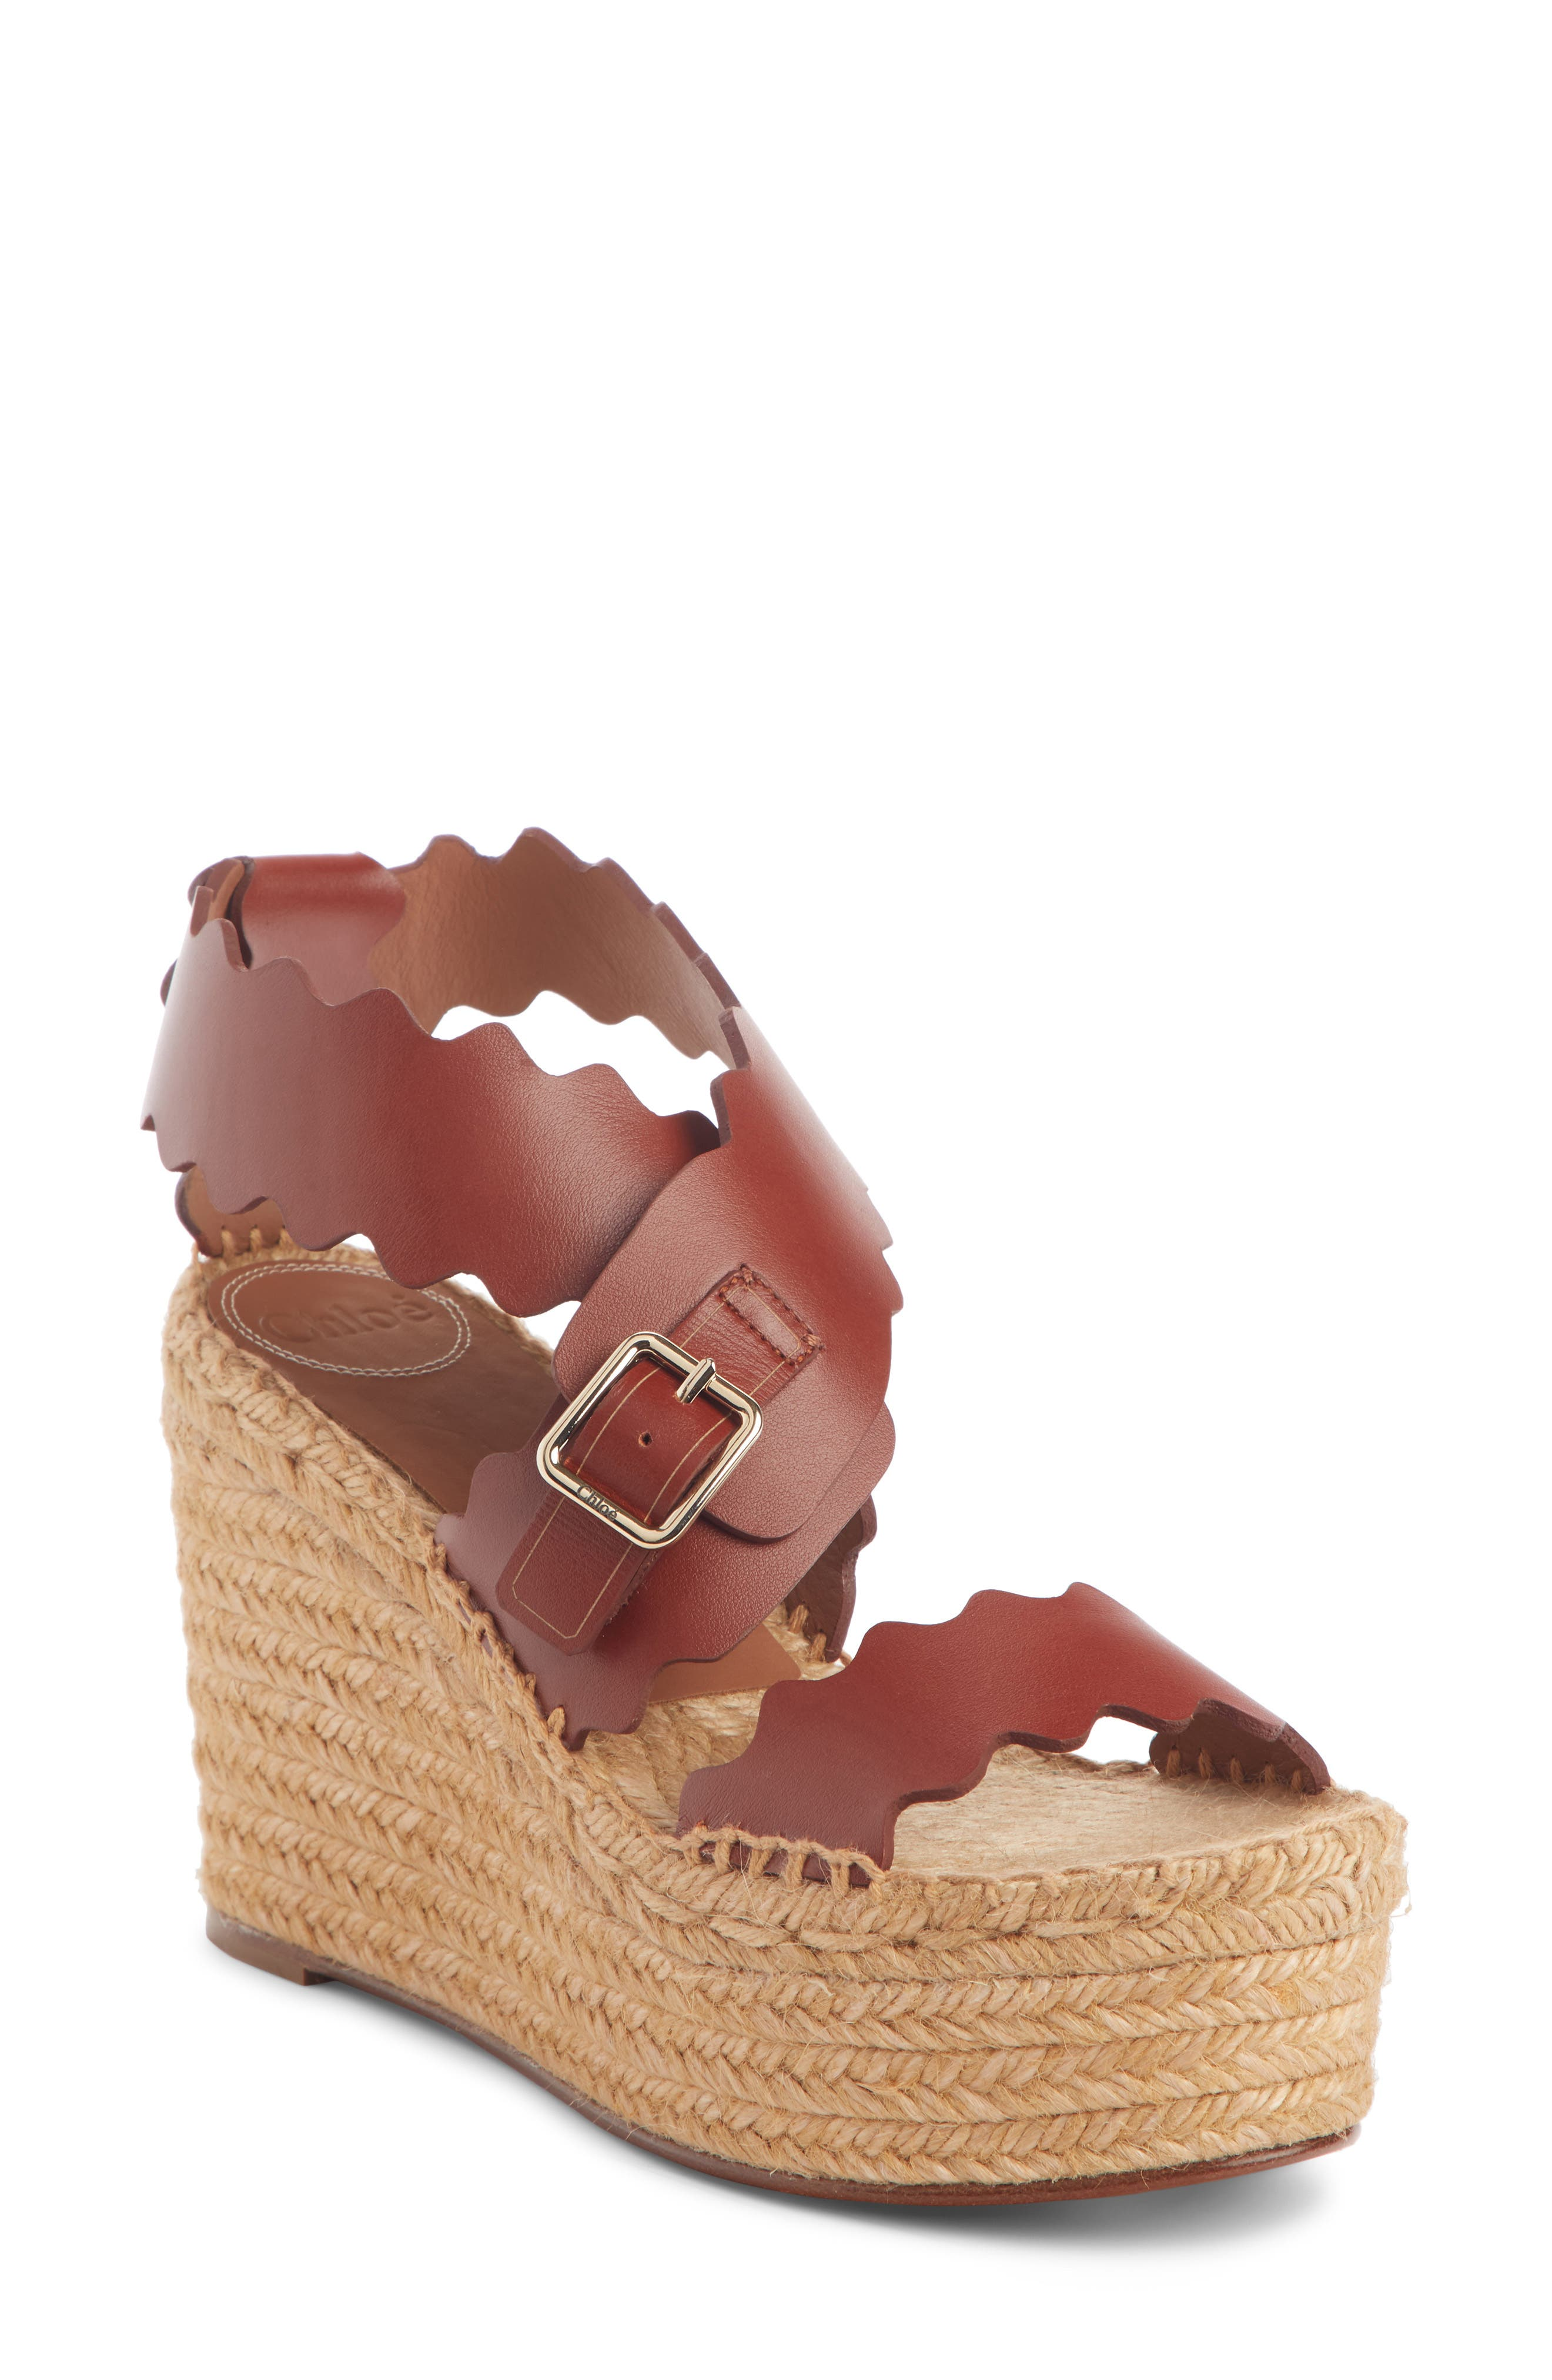 Image of Chloe Lauren Leather Espadrille Platform Wedge Sandal